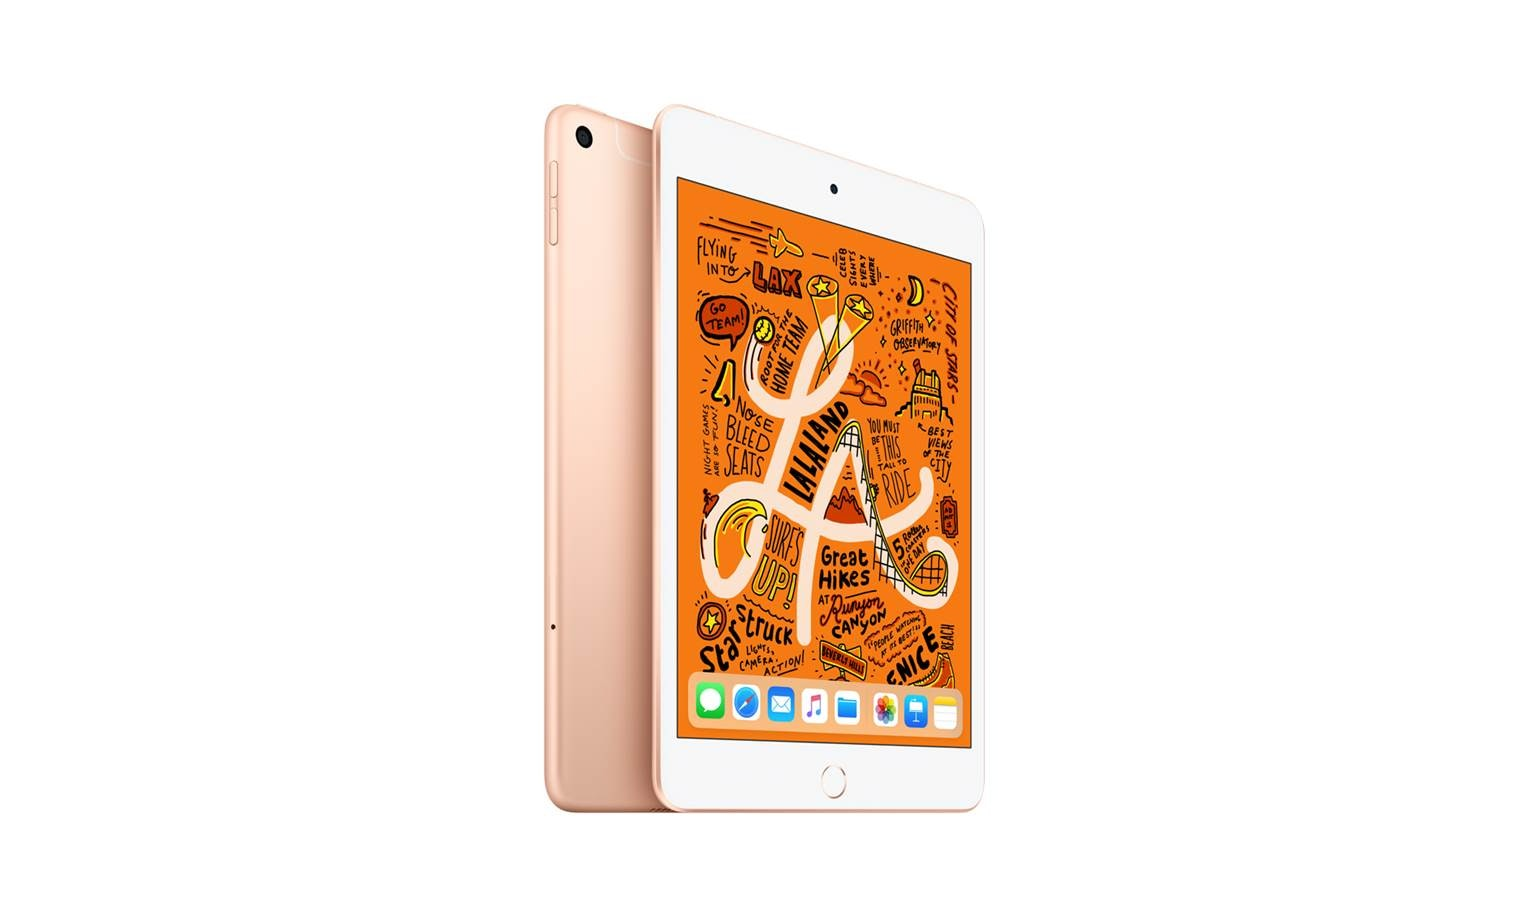 Apple iPad Mini 4G (256GB) - Gold (Front)